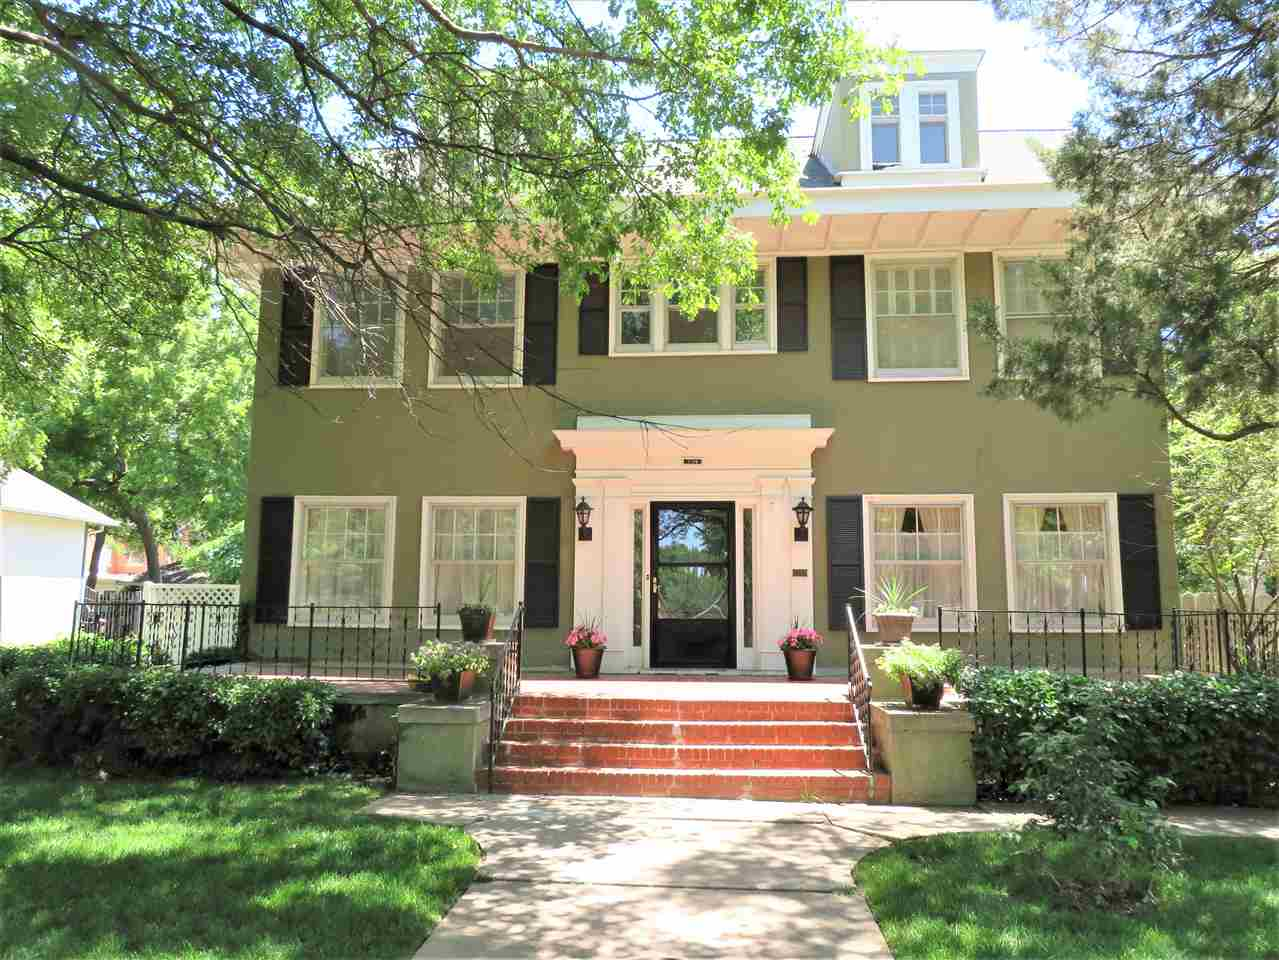 Rare opportunity to own a historic home on one of Wichita's most beautiful streets, Belmont Place, between the arches! This 1914 gem has only had four owners, the first being Fern Mead Jordan, the widow of one of Wichita's founders, J.R. Mead and the last having owned the home since 1969. Walk into a huge entry with a classic center hall floorplan highlighted by a gorgeous open staircase. There are 10+ foot ceilings in the large living room and dining room which are both perfect for entertaining and are filled with natural light. The living room (32' long) is spacious and is anchored on the east end by a lovely fireplace. This home has been lovingly cared for over the years and retains many original fixtures and a sophisticated décor that lends itself to the age of the house and harkens back to the glamorous era of 1930's Palm Beach. The main floor also includes a bright and airy kitchen with large pantry, back staircase, and half bath~ perfect for guests.  Upstairs you will find three large bedrooms with original hardwood floors, walk in closets, a sunny enclosed sleeping porch (ideal for a home office, nursery or 4th bedroom) and a large full bath with many original features and plenty of storage. There is an extra abundance of storage space to be found with the huge unfinished (yet could be) basement and attic. The private back patio and side yard provide endless possibilities to create your own outdoor secret garden. There is currently a sport court which needs repair or can easily be taken out and replaced with a southern exposure lawn and garden. There has been slight settling over the years which is reflected in some walls but is common with the age of the house, but the bones and structure and integrity appear solid and beautiful. There is a small yearly HOA fee ($175 annually)  for the residents of Belmont Place to maintain the arches at Douglas & Central as well as the original electric streetlights along the four-block stretch. Don't let this opportunity